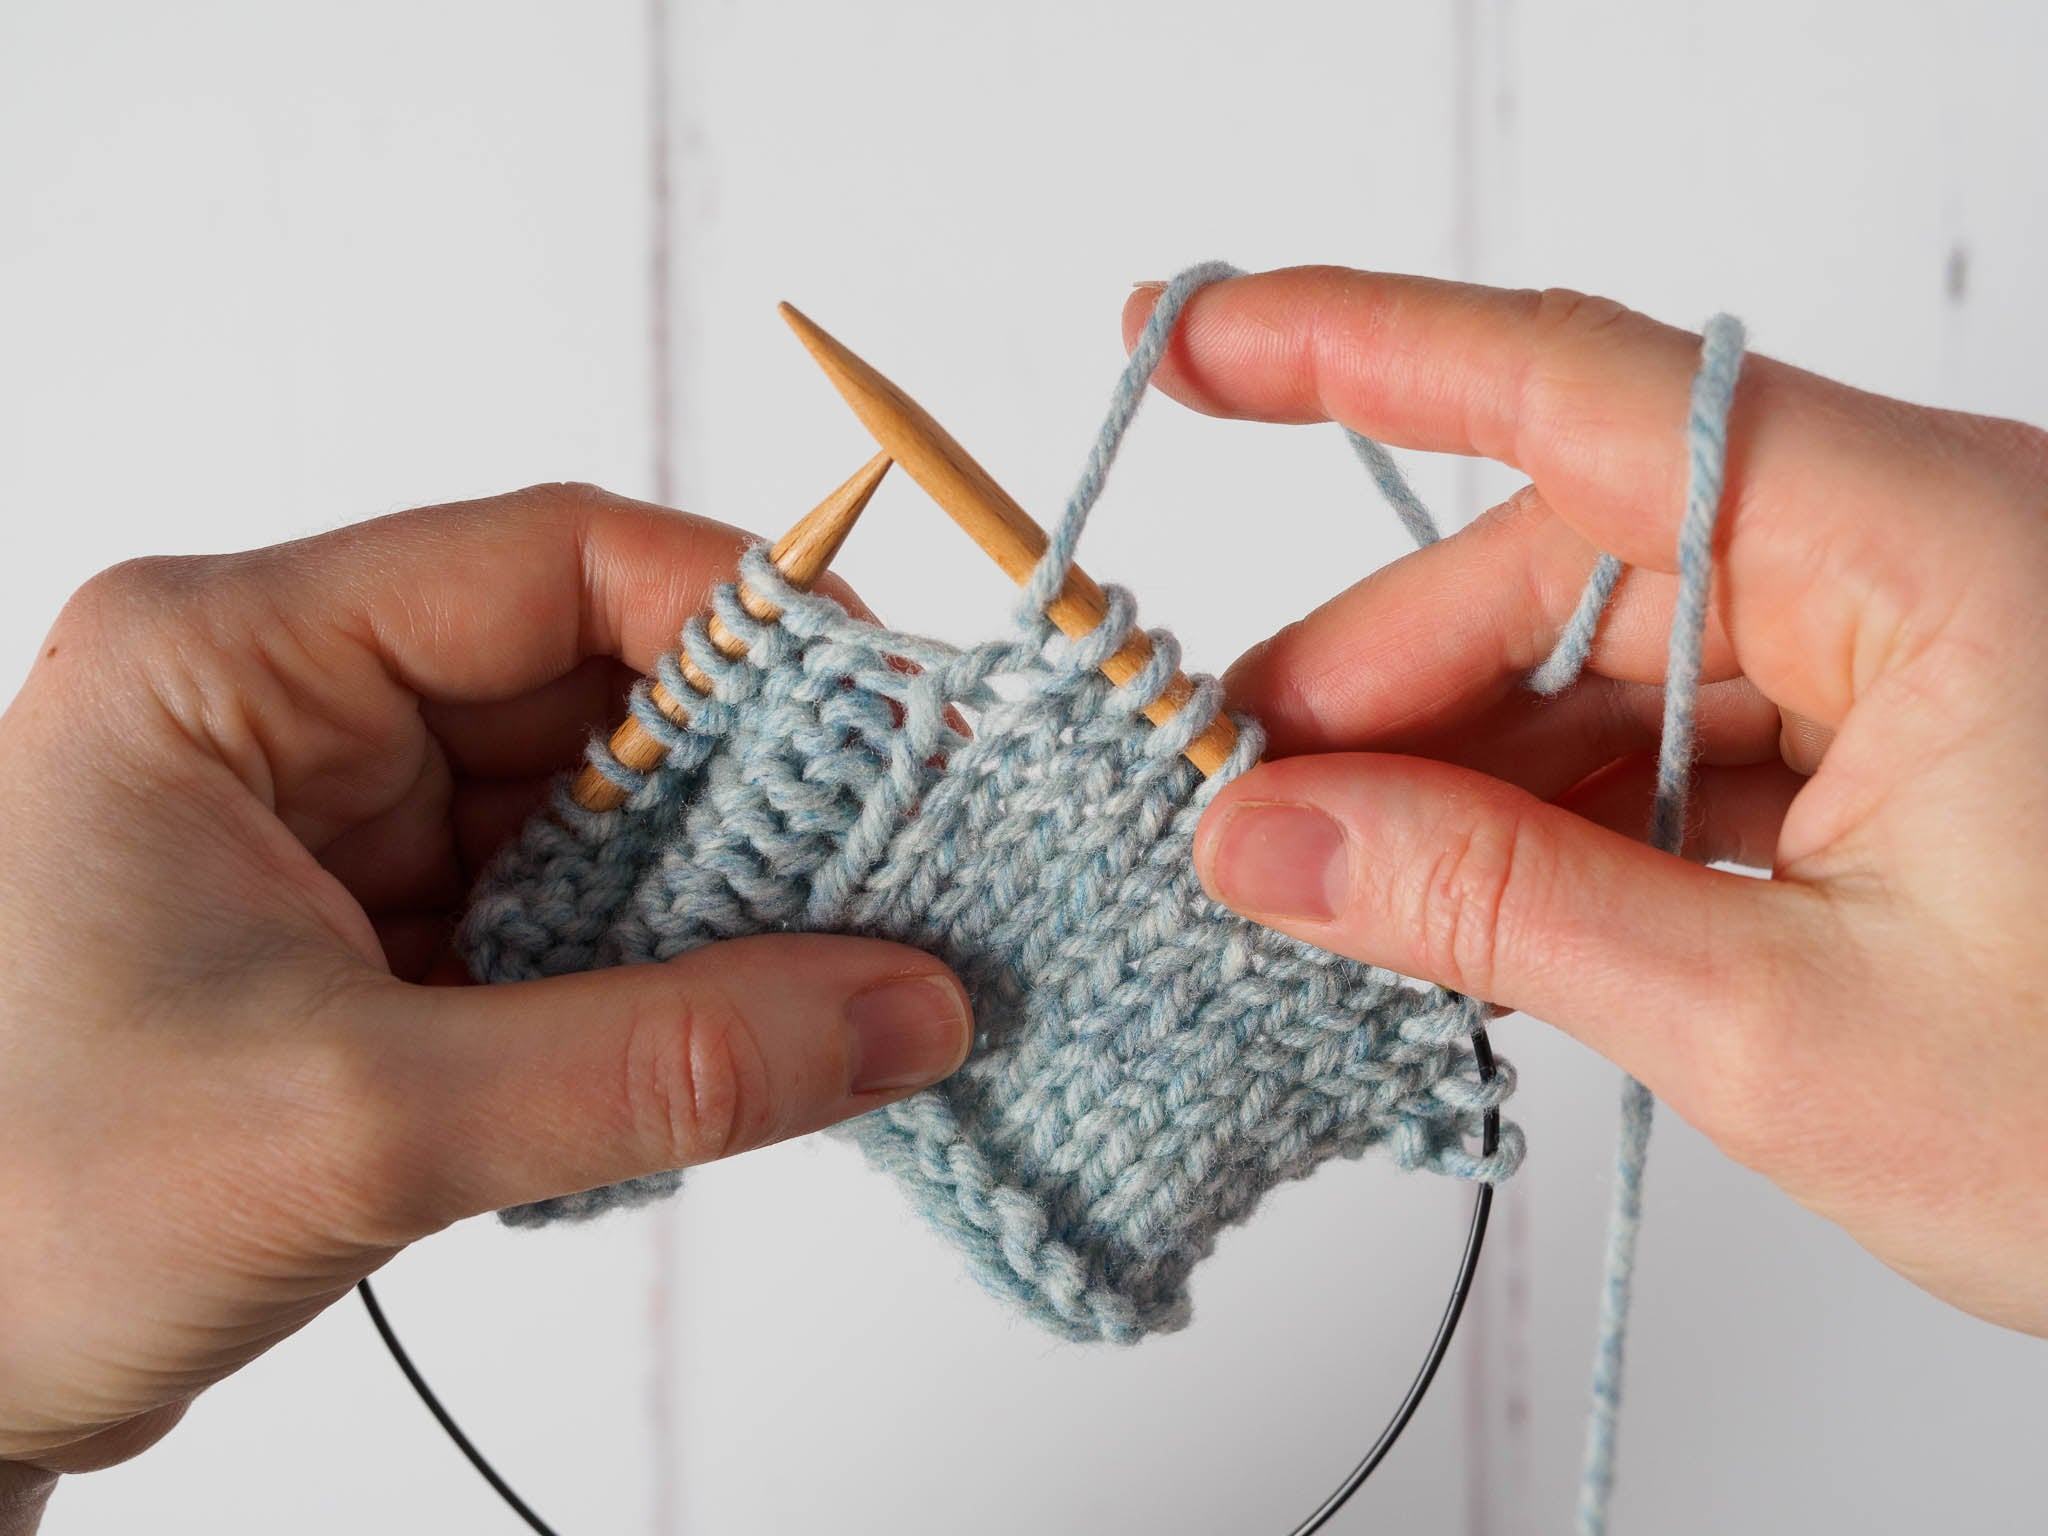 A small grey swatch is on the needles, with purl stitches showing to the left and knit stitches to the right. The working yarn has been brought to the front between the needles.